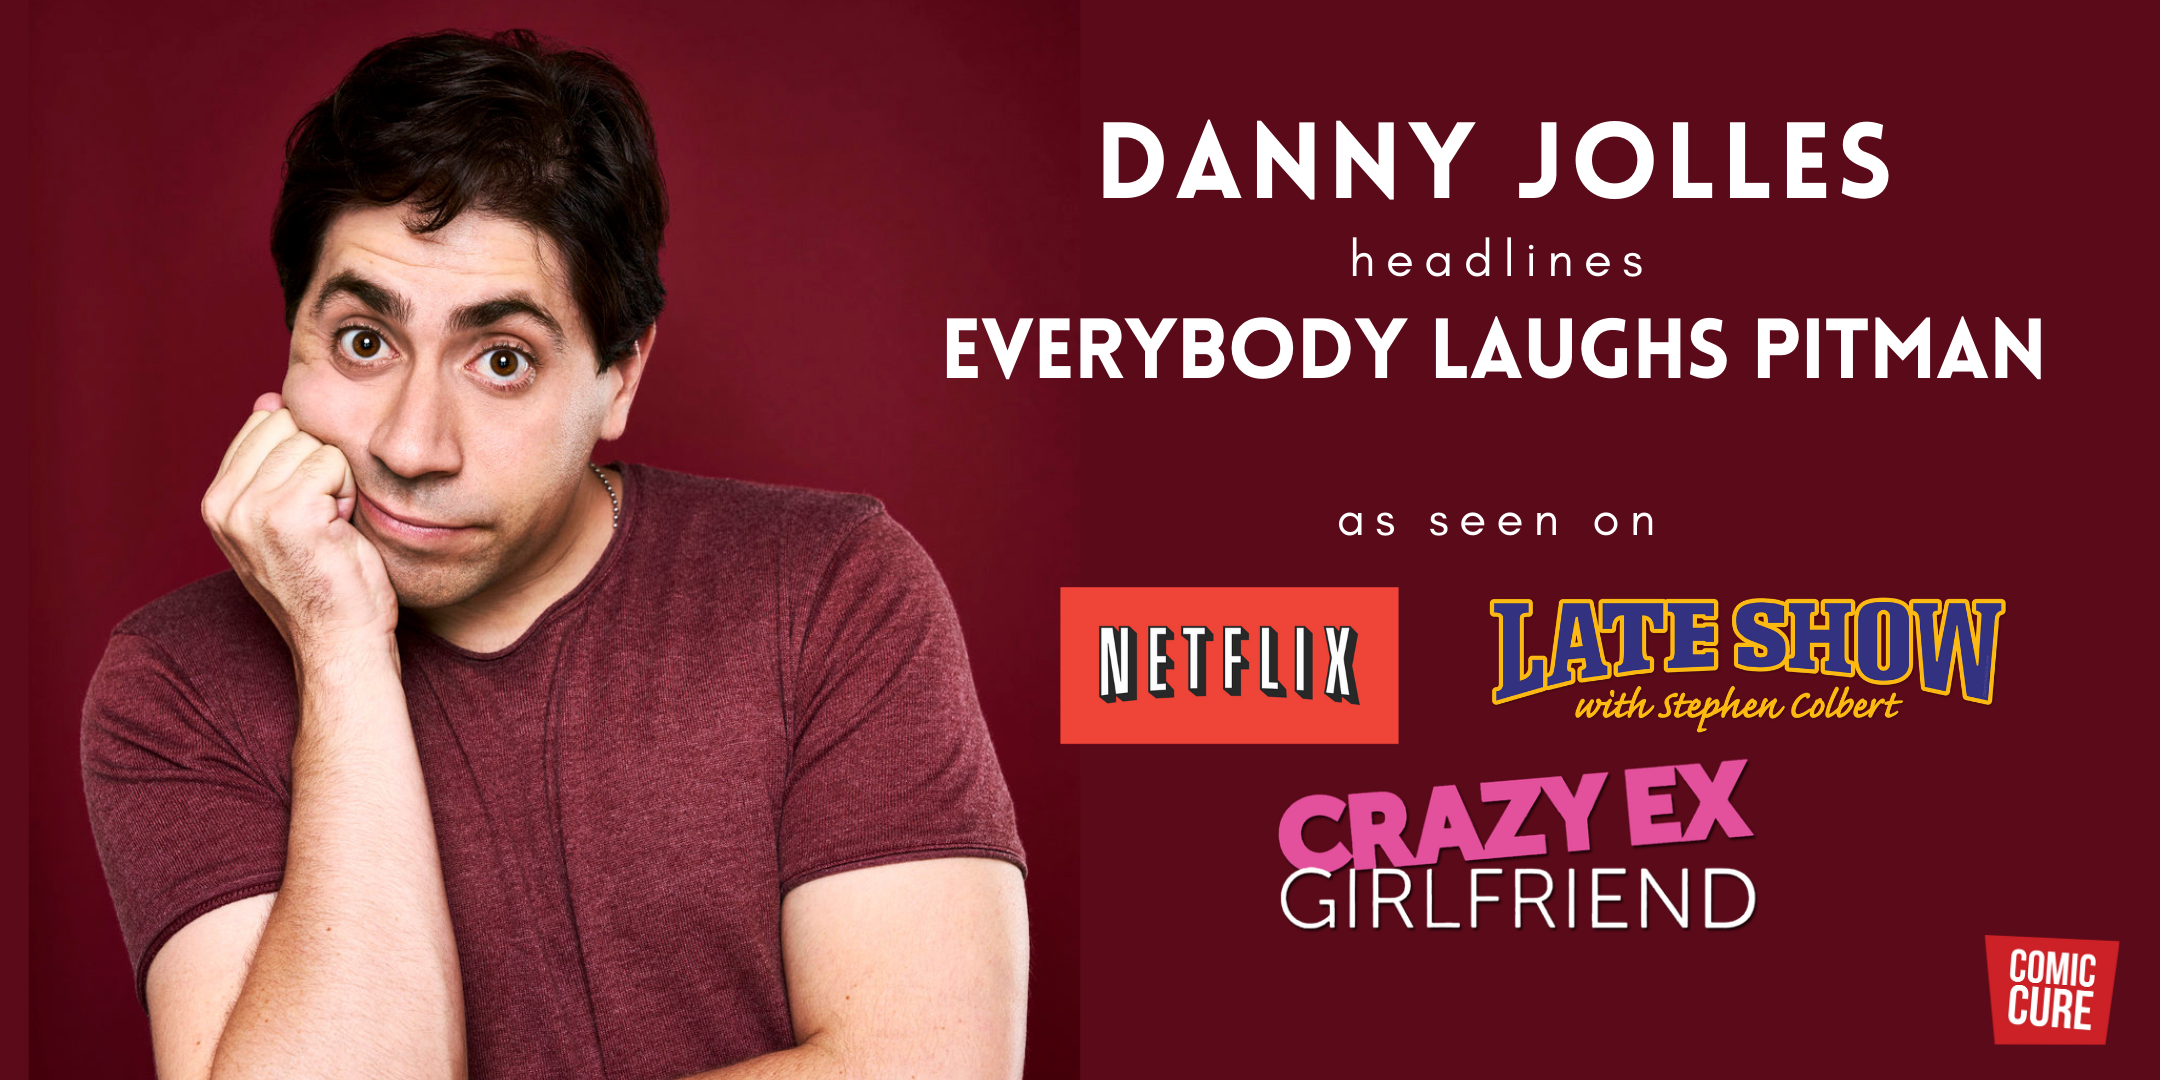 Sat. Oct. 10 – Danny Jolles in South Jersey